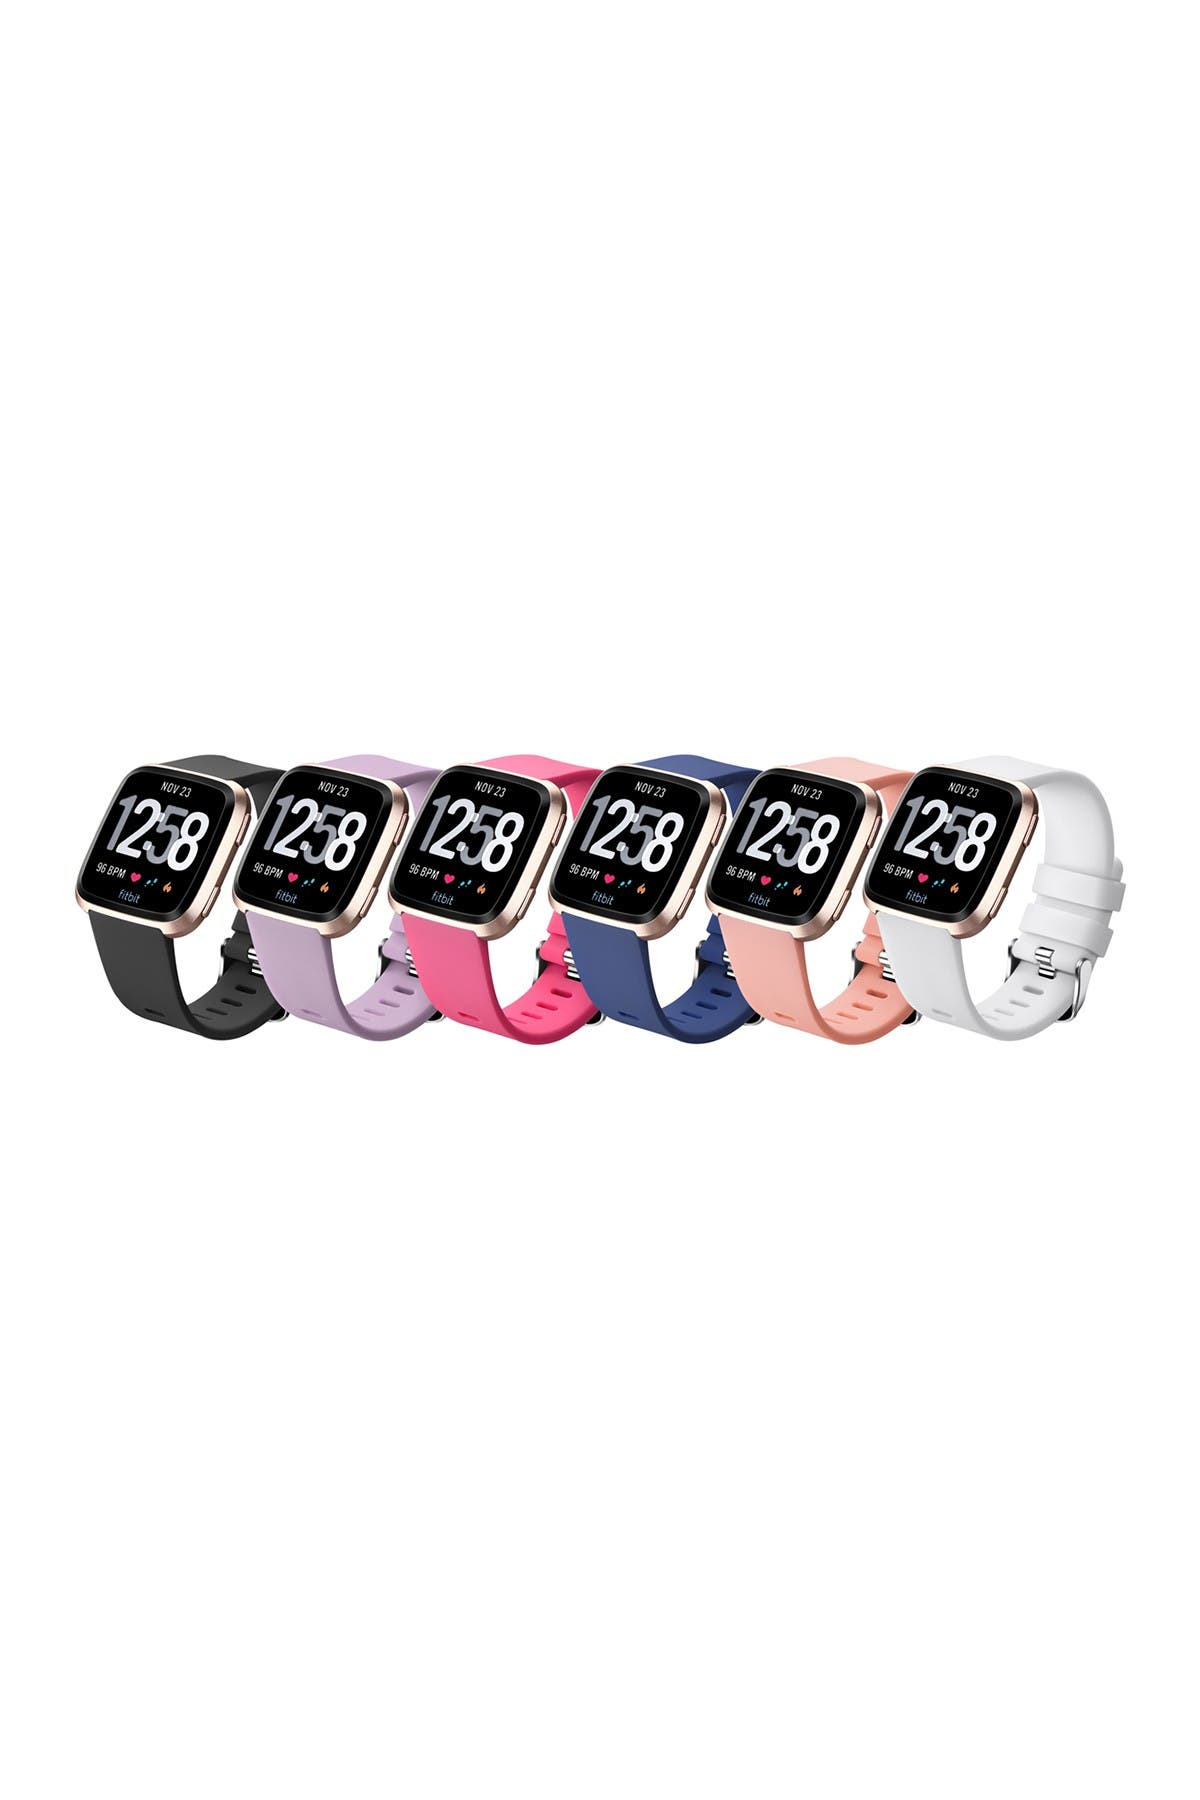 Image of POSH TECH Large Fitbit Versa Silicone Band - Pack of 6